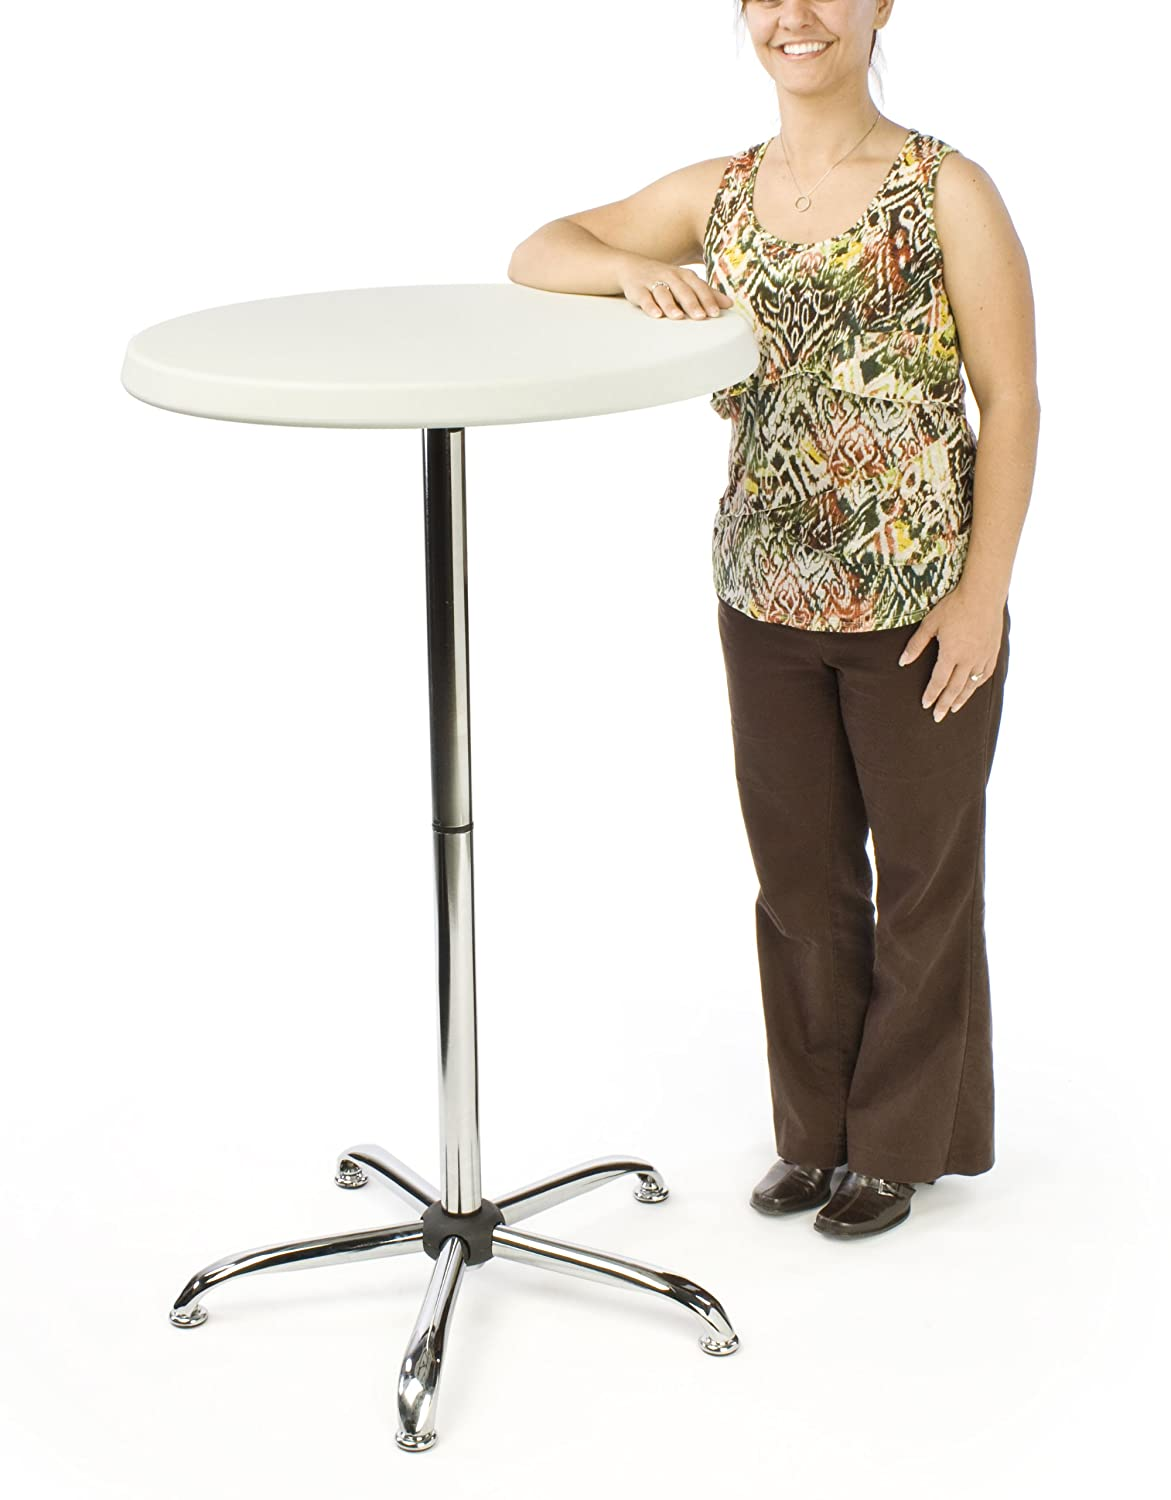 Amazoncom Displaysgo Inch Tall Round Pub Table With Plastic - Tall round cocktail table